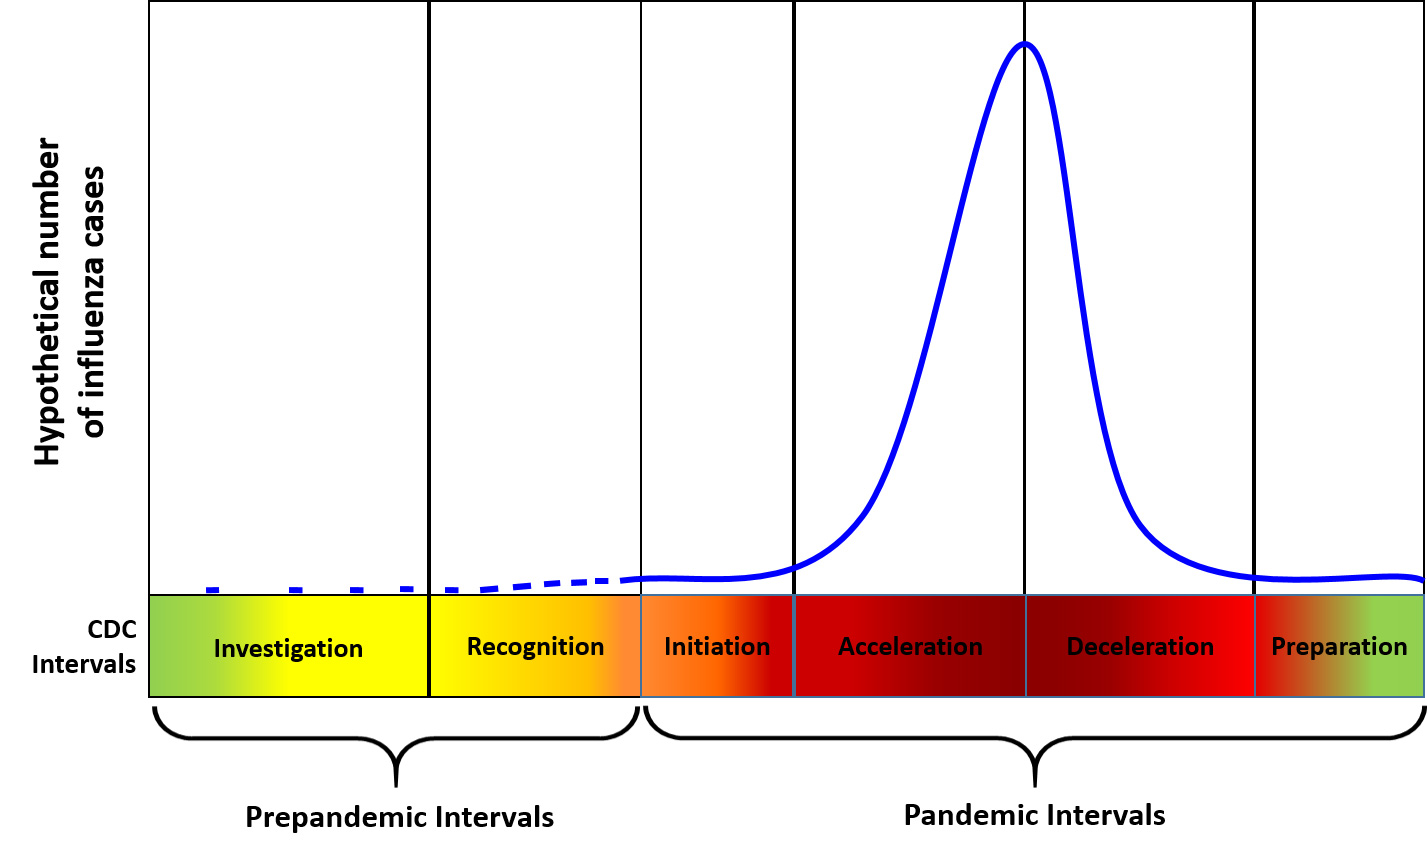 Chart: Preparedness and response framework for novel influenza A virus pandemics: CDC intervals